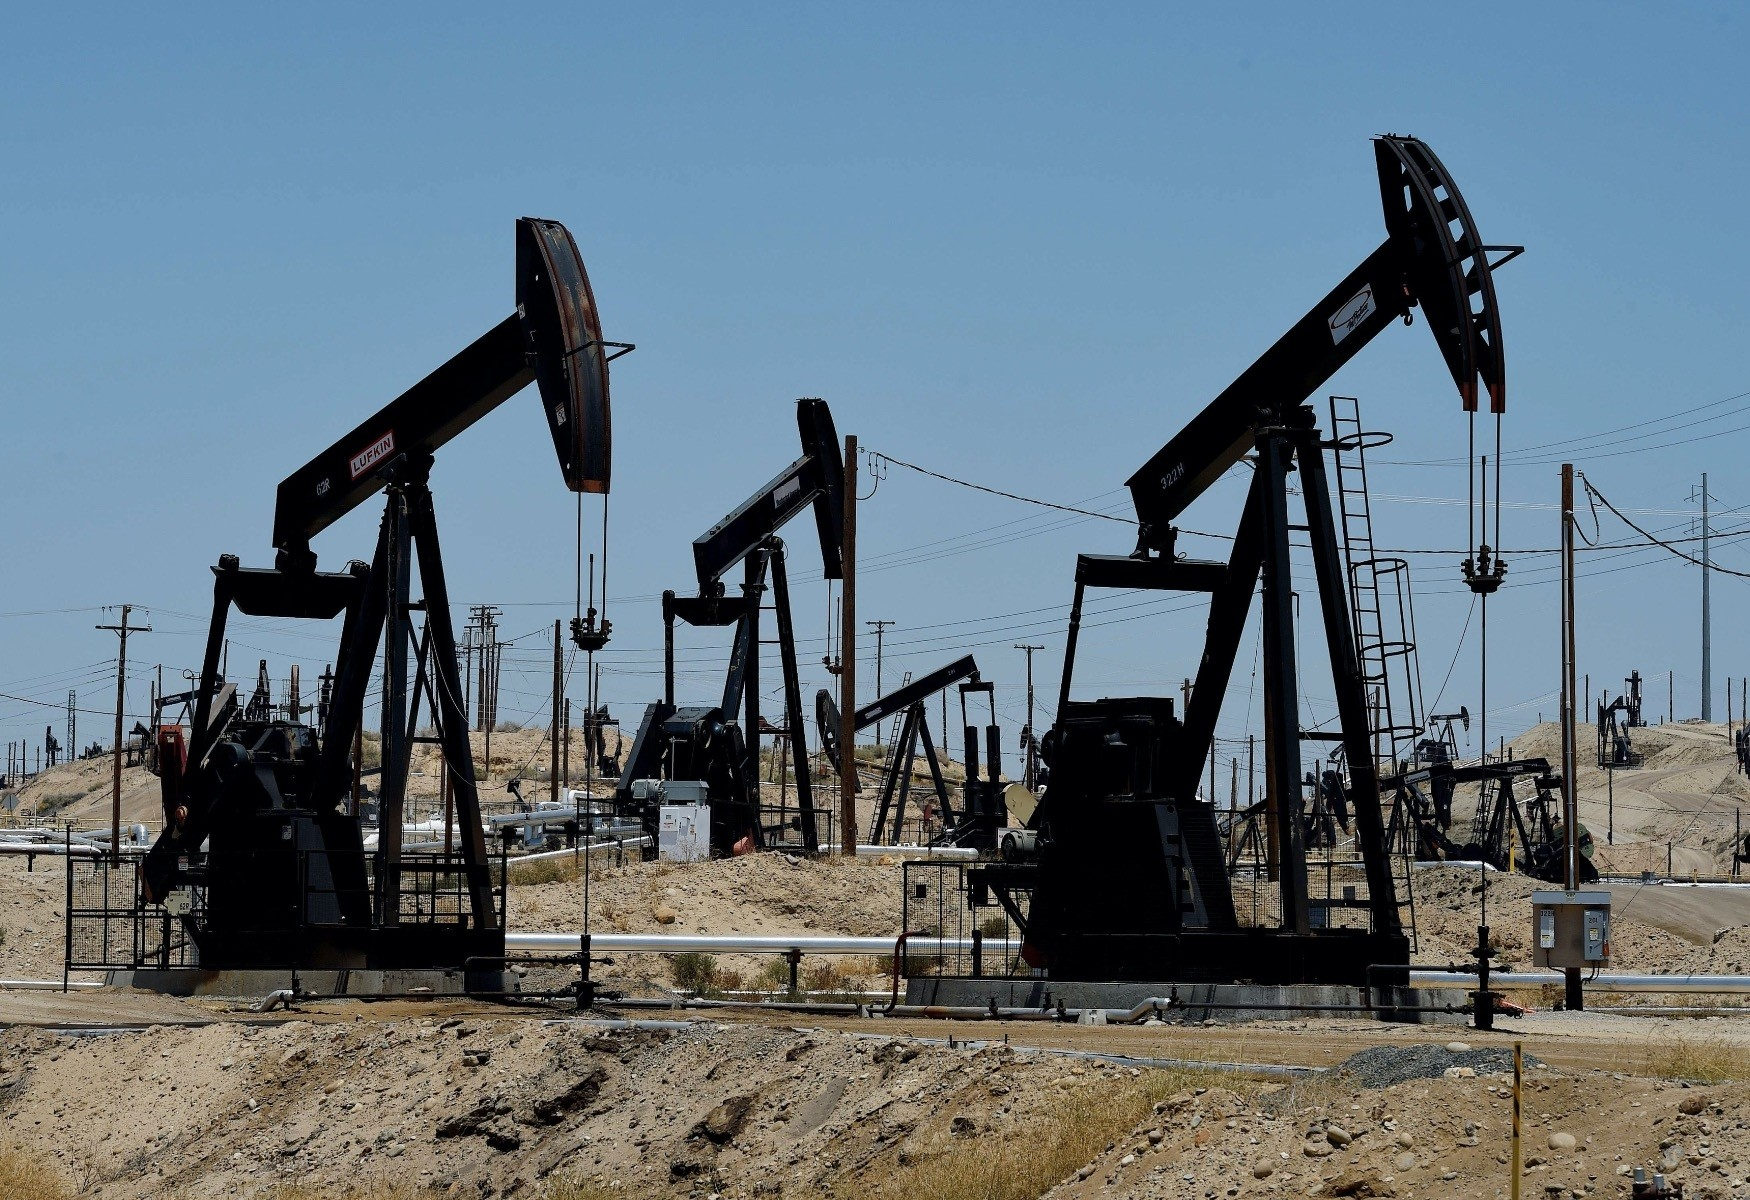 Pumping jacks at the Chevron section of the Kern River Oil Field near Bakersfield, California.